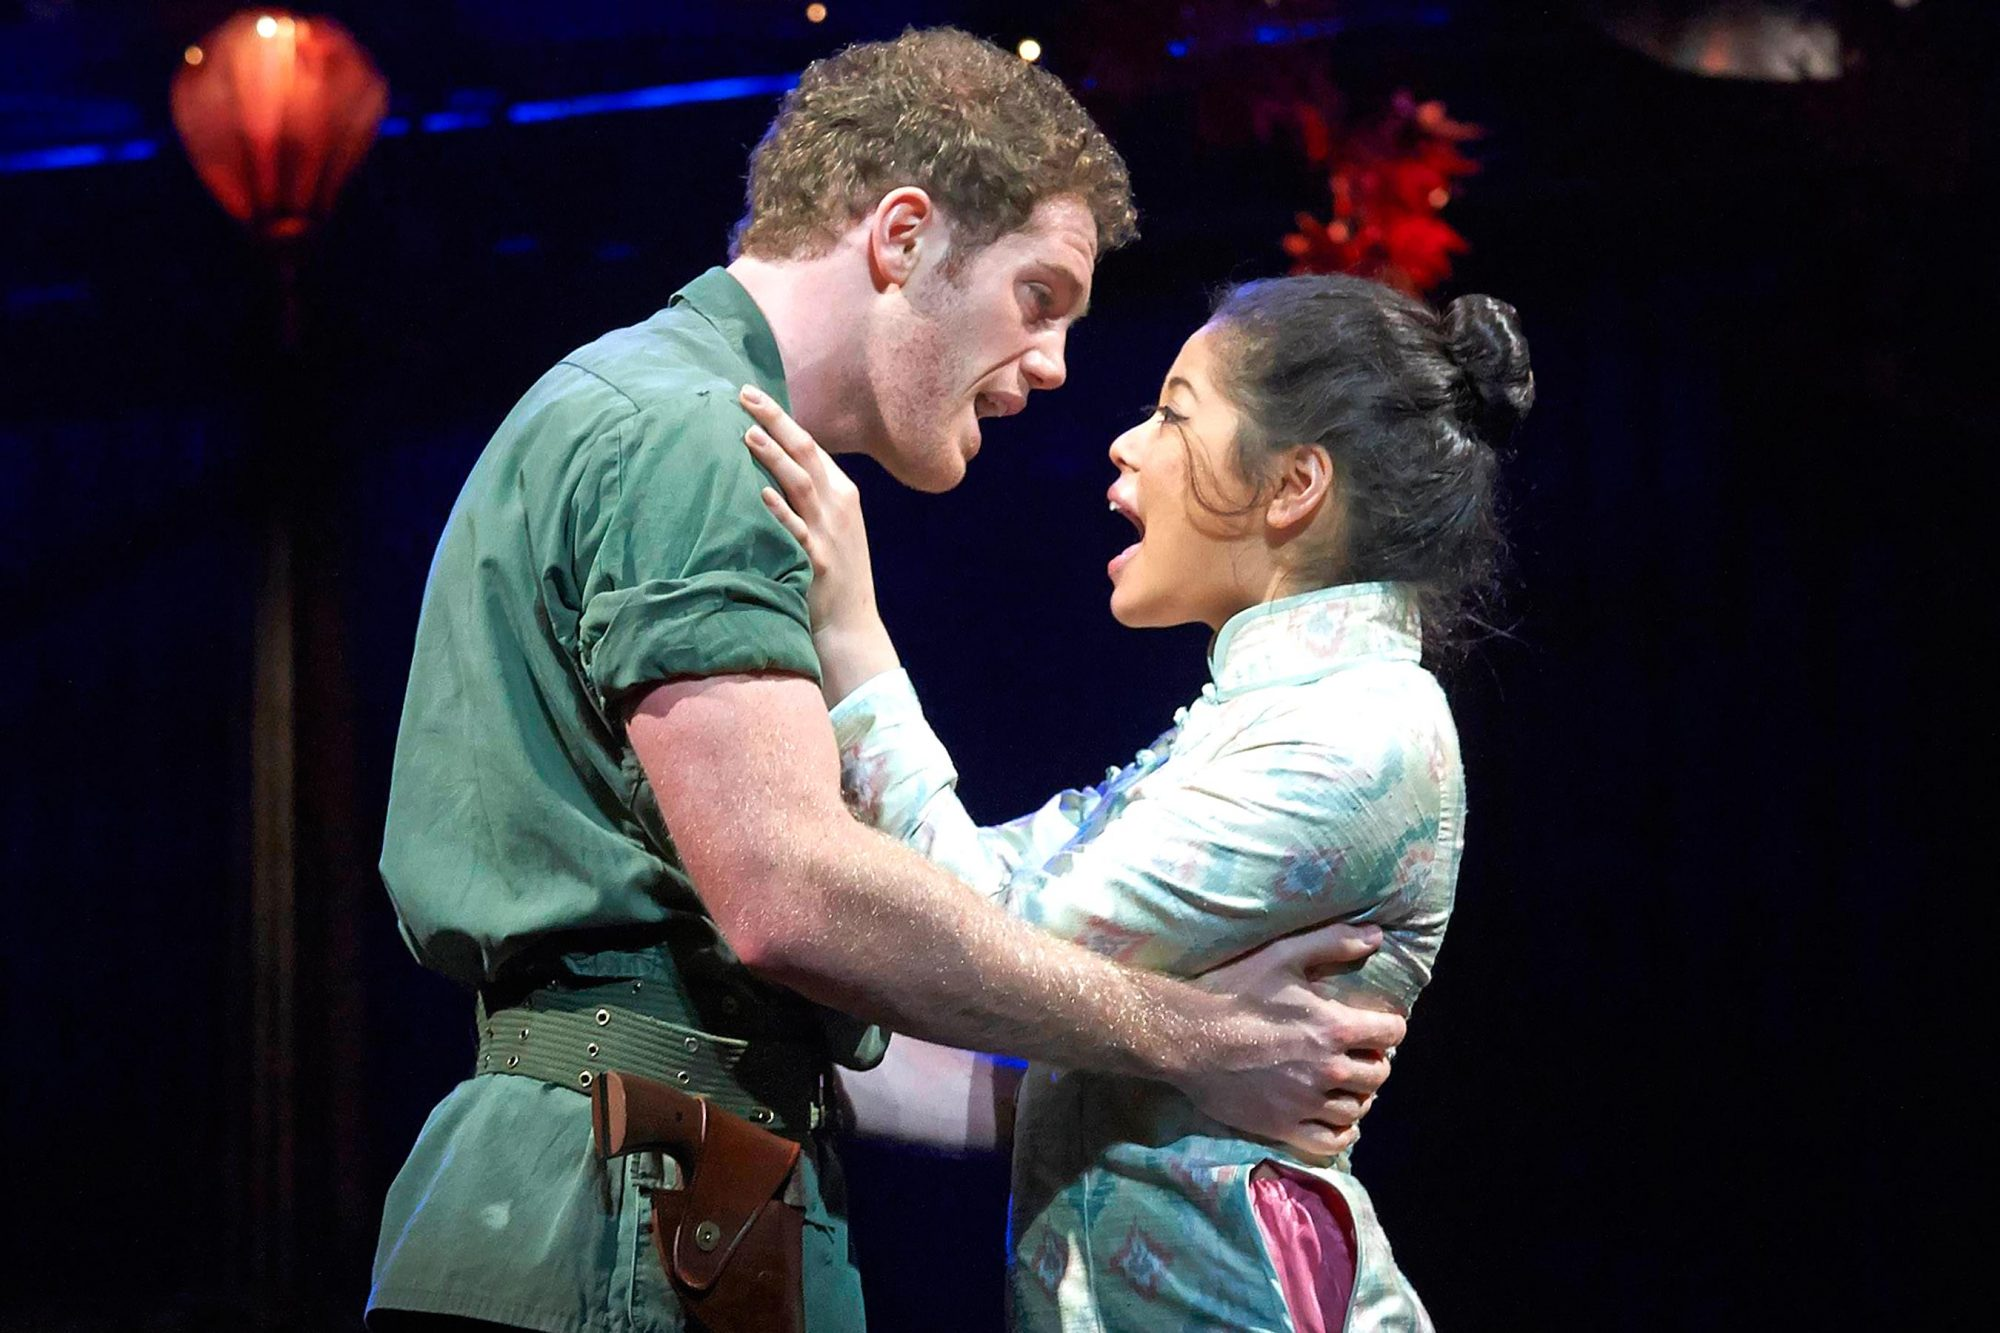 MISS SAIGON - THE PRINCE EDWARD THEATRE